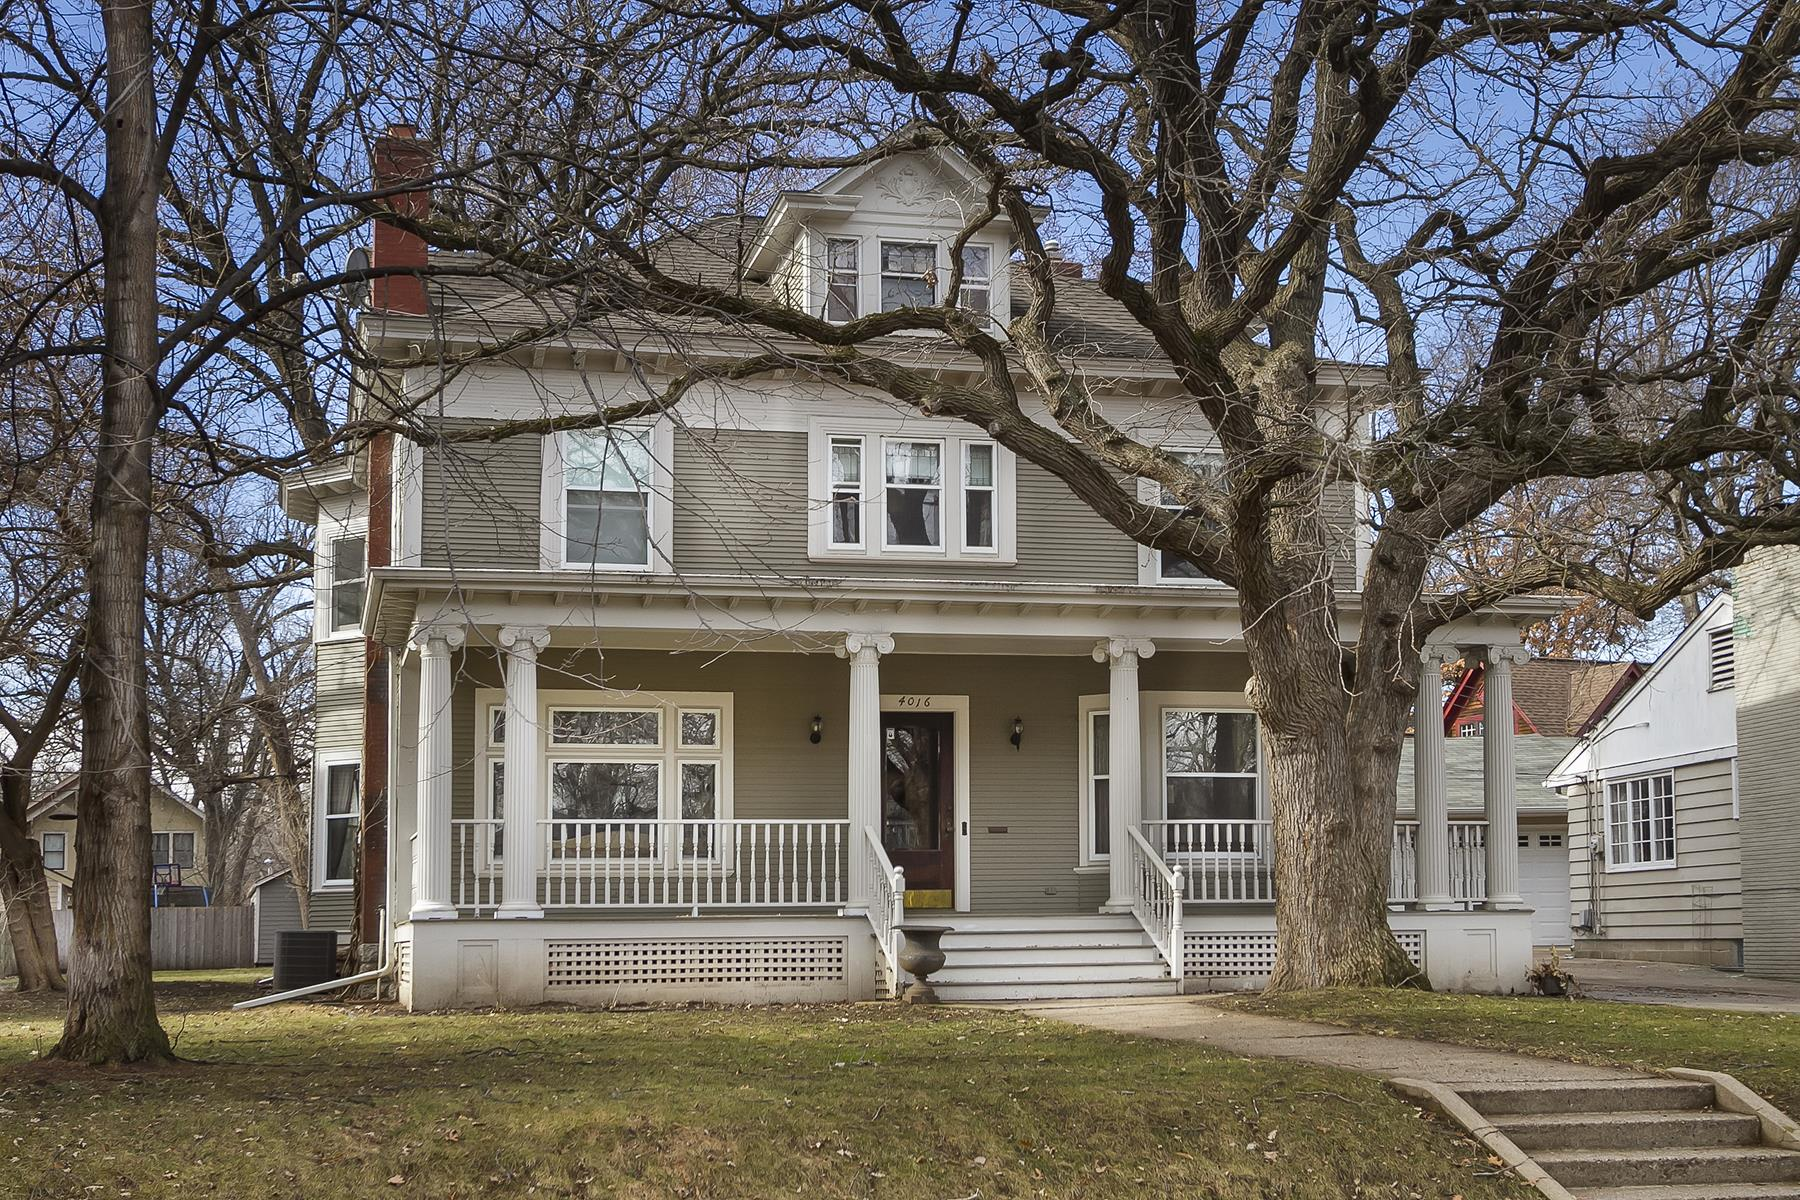 Single Family Home for Sale at 4016 Linden Hills Boulevard Linden Hills, Minneapolis, Minnesota, 55410 United States